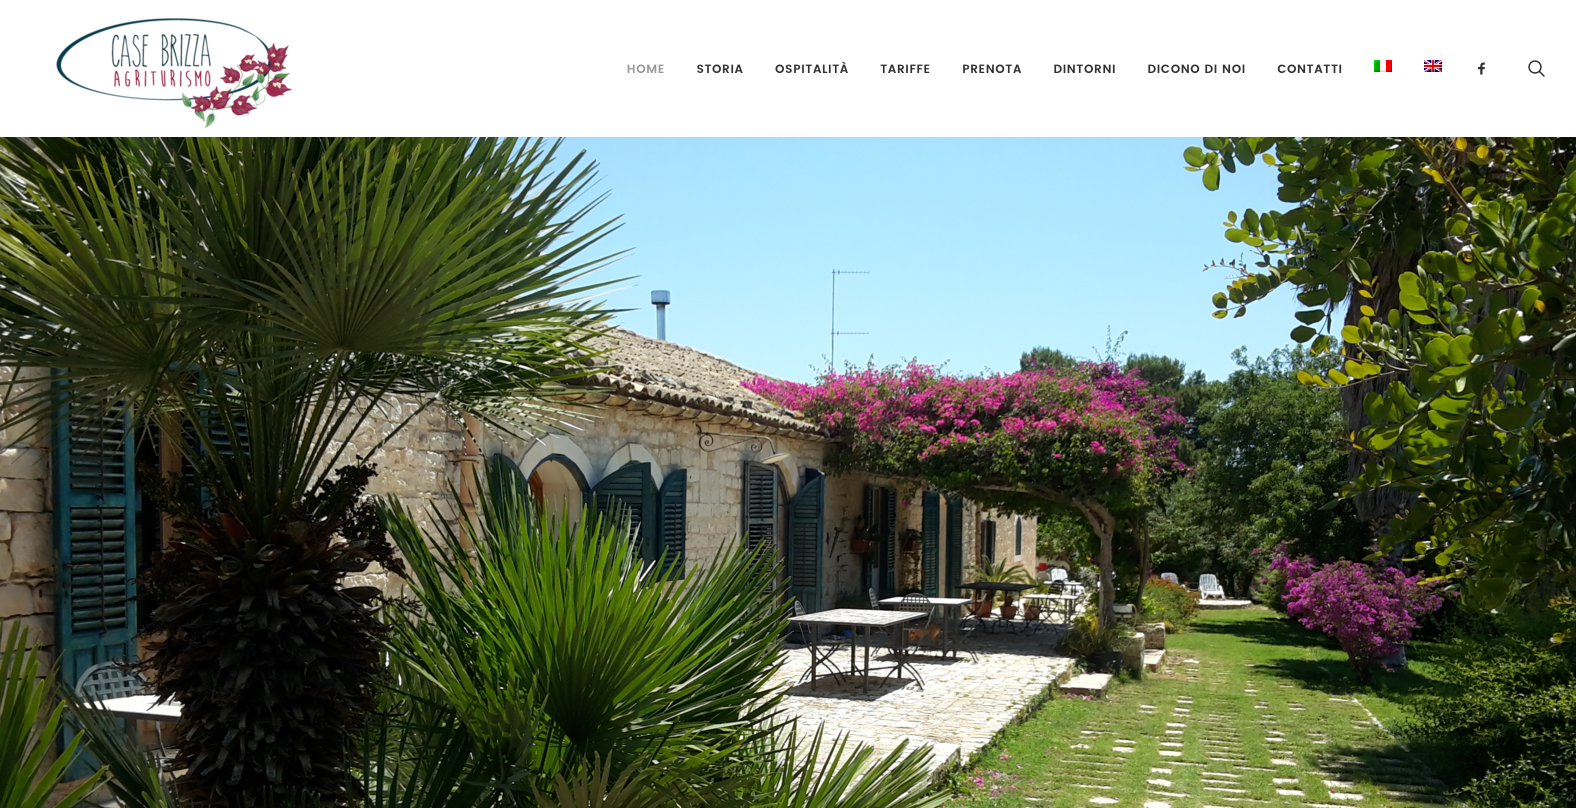 www.agriturismocasebrizza.com wp-based website (2017)